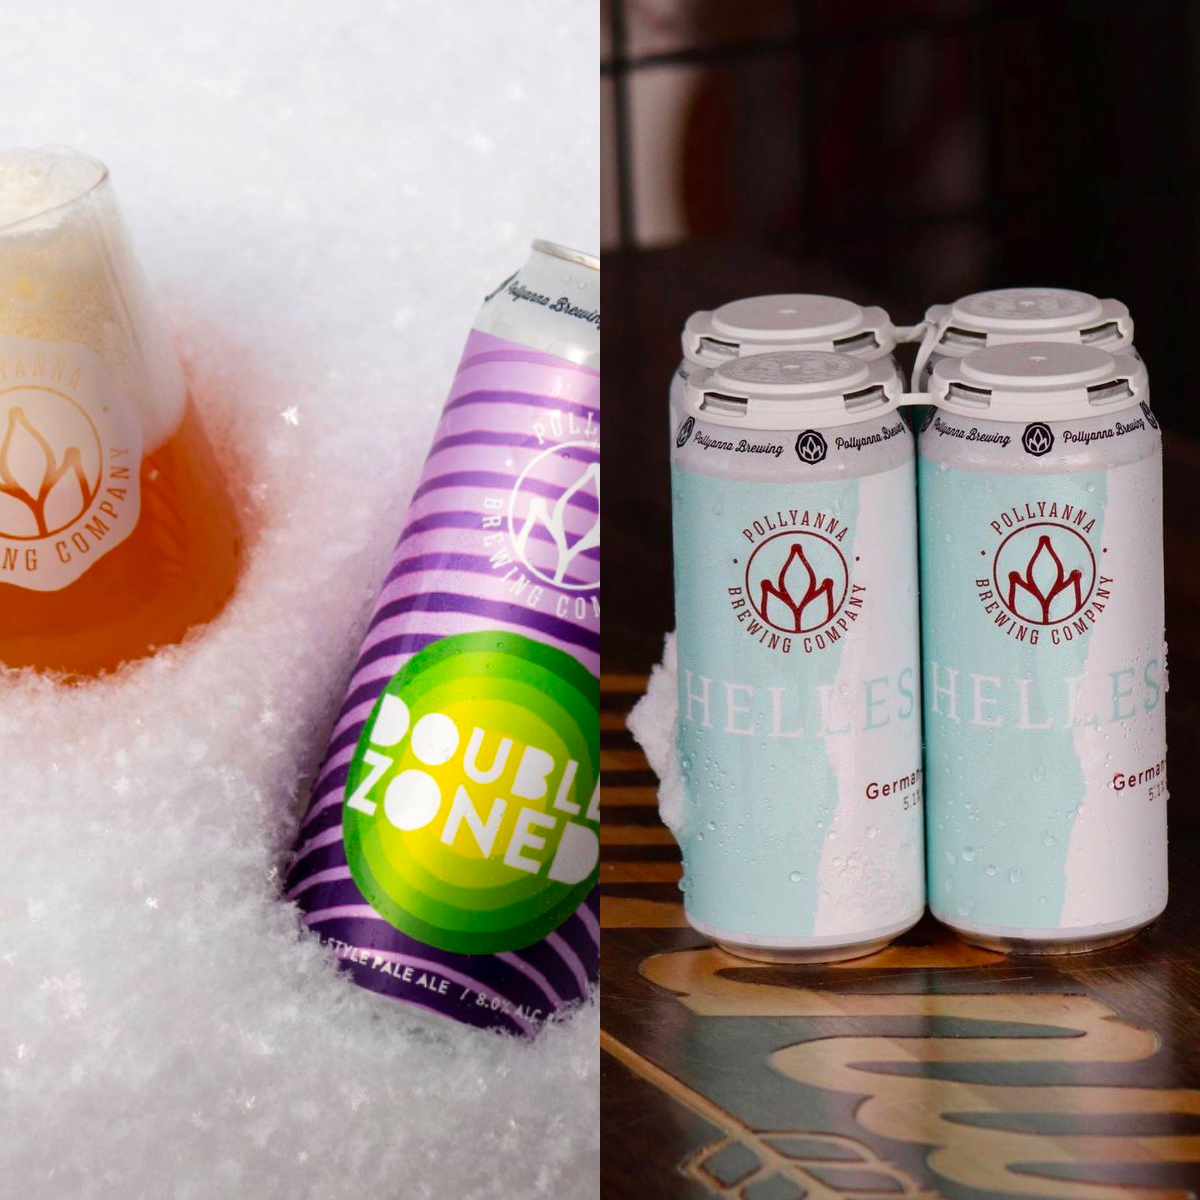 Left - glass and can of Double Zoned sitting in snow, right - four pack of Helles --- both from Pollyanna Brewing Company